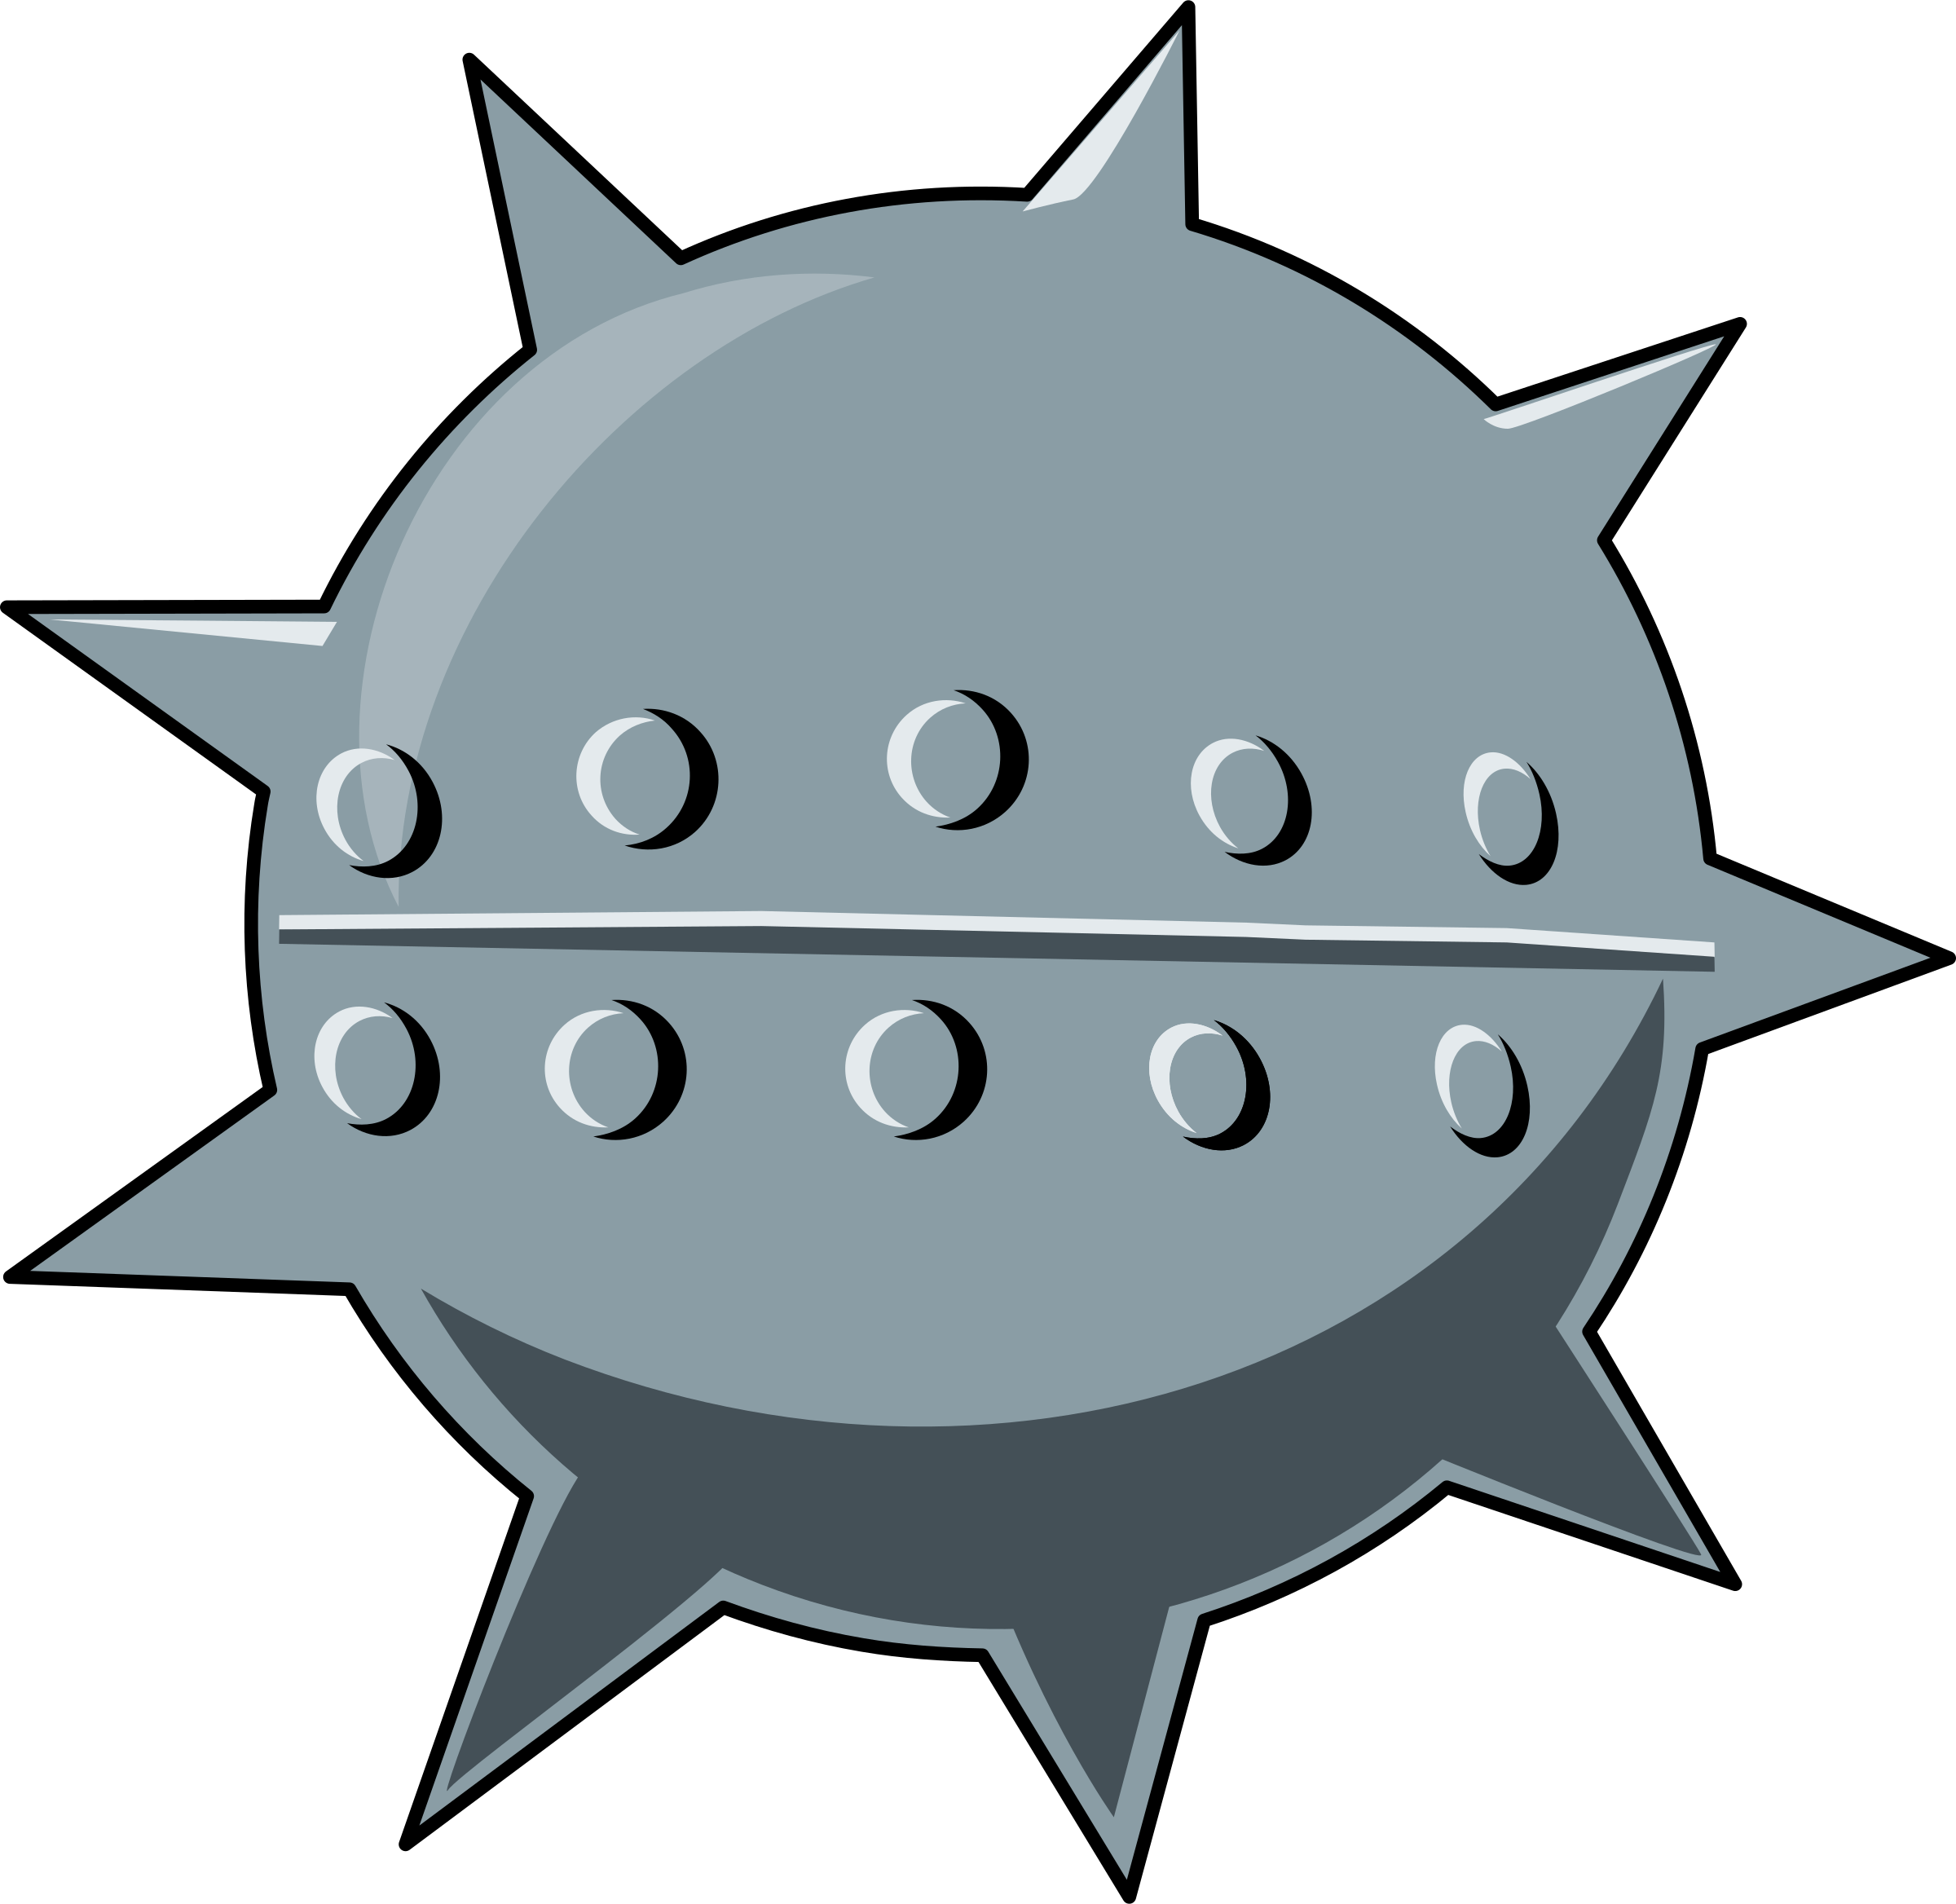 Spikes clipart #1, Download drawings